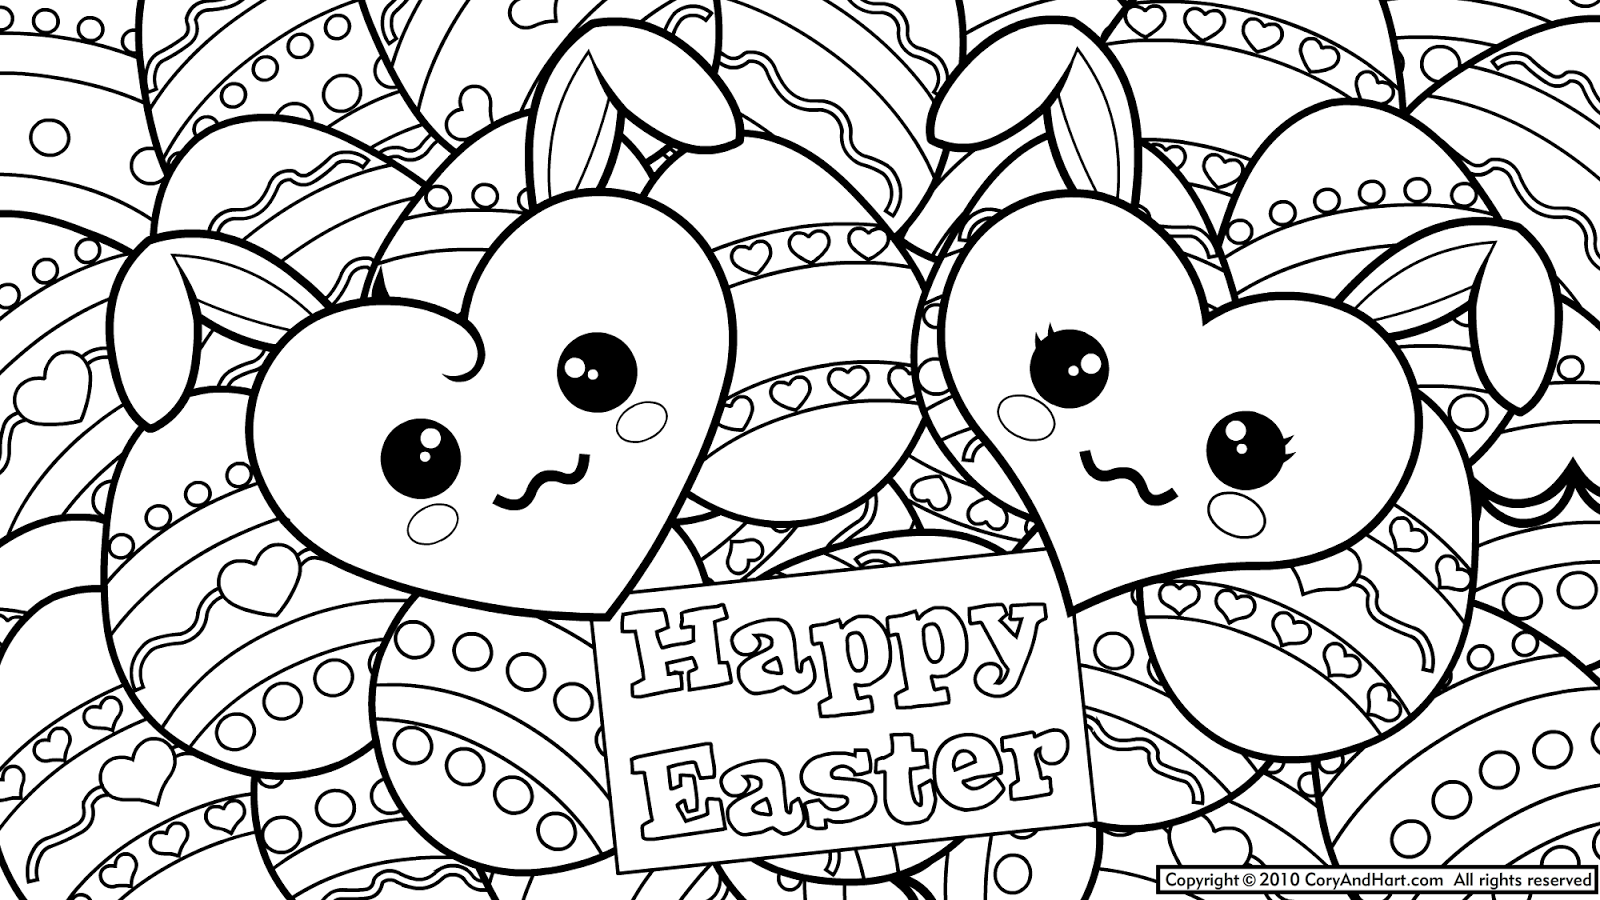 5 Easter Eggs Coloring Pages Printable